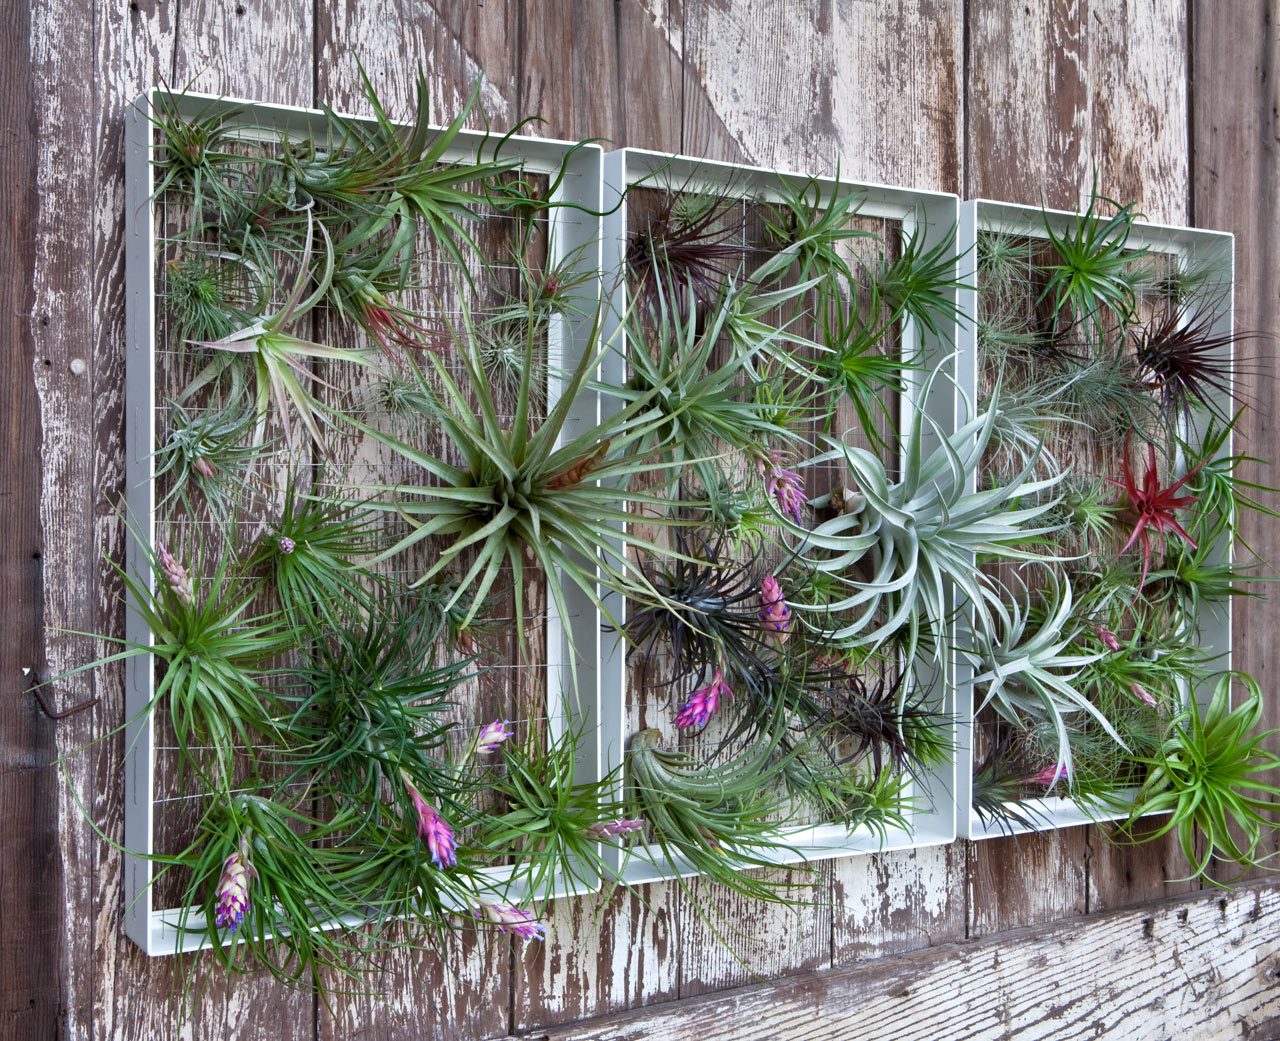 Living Wall Art Vertical Garden Frames by Airplantman ... & Living Wall Art Vertical Garden Frames by Airplantman - Design Milk